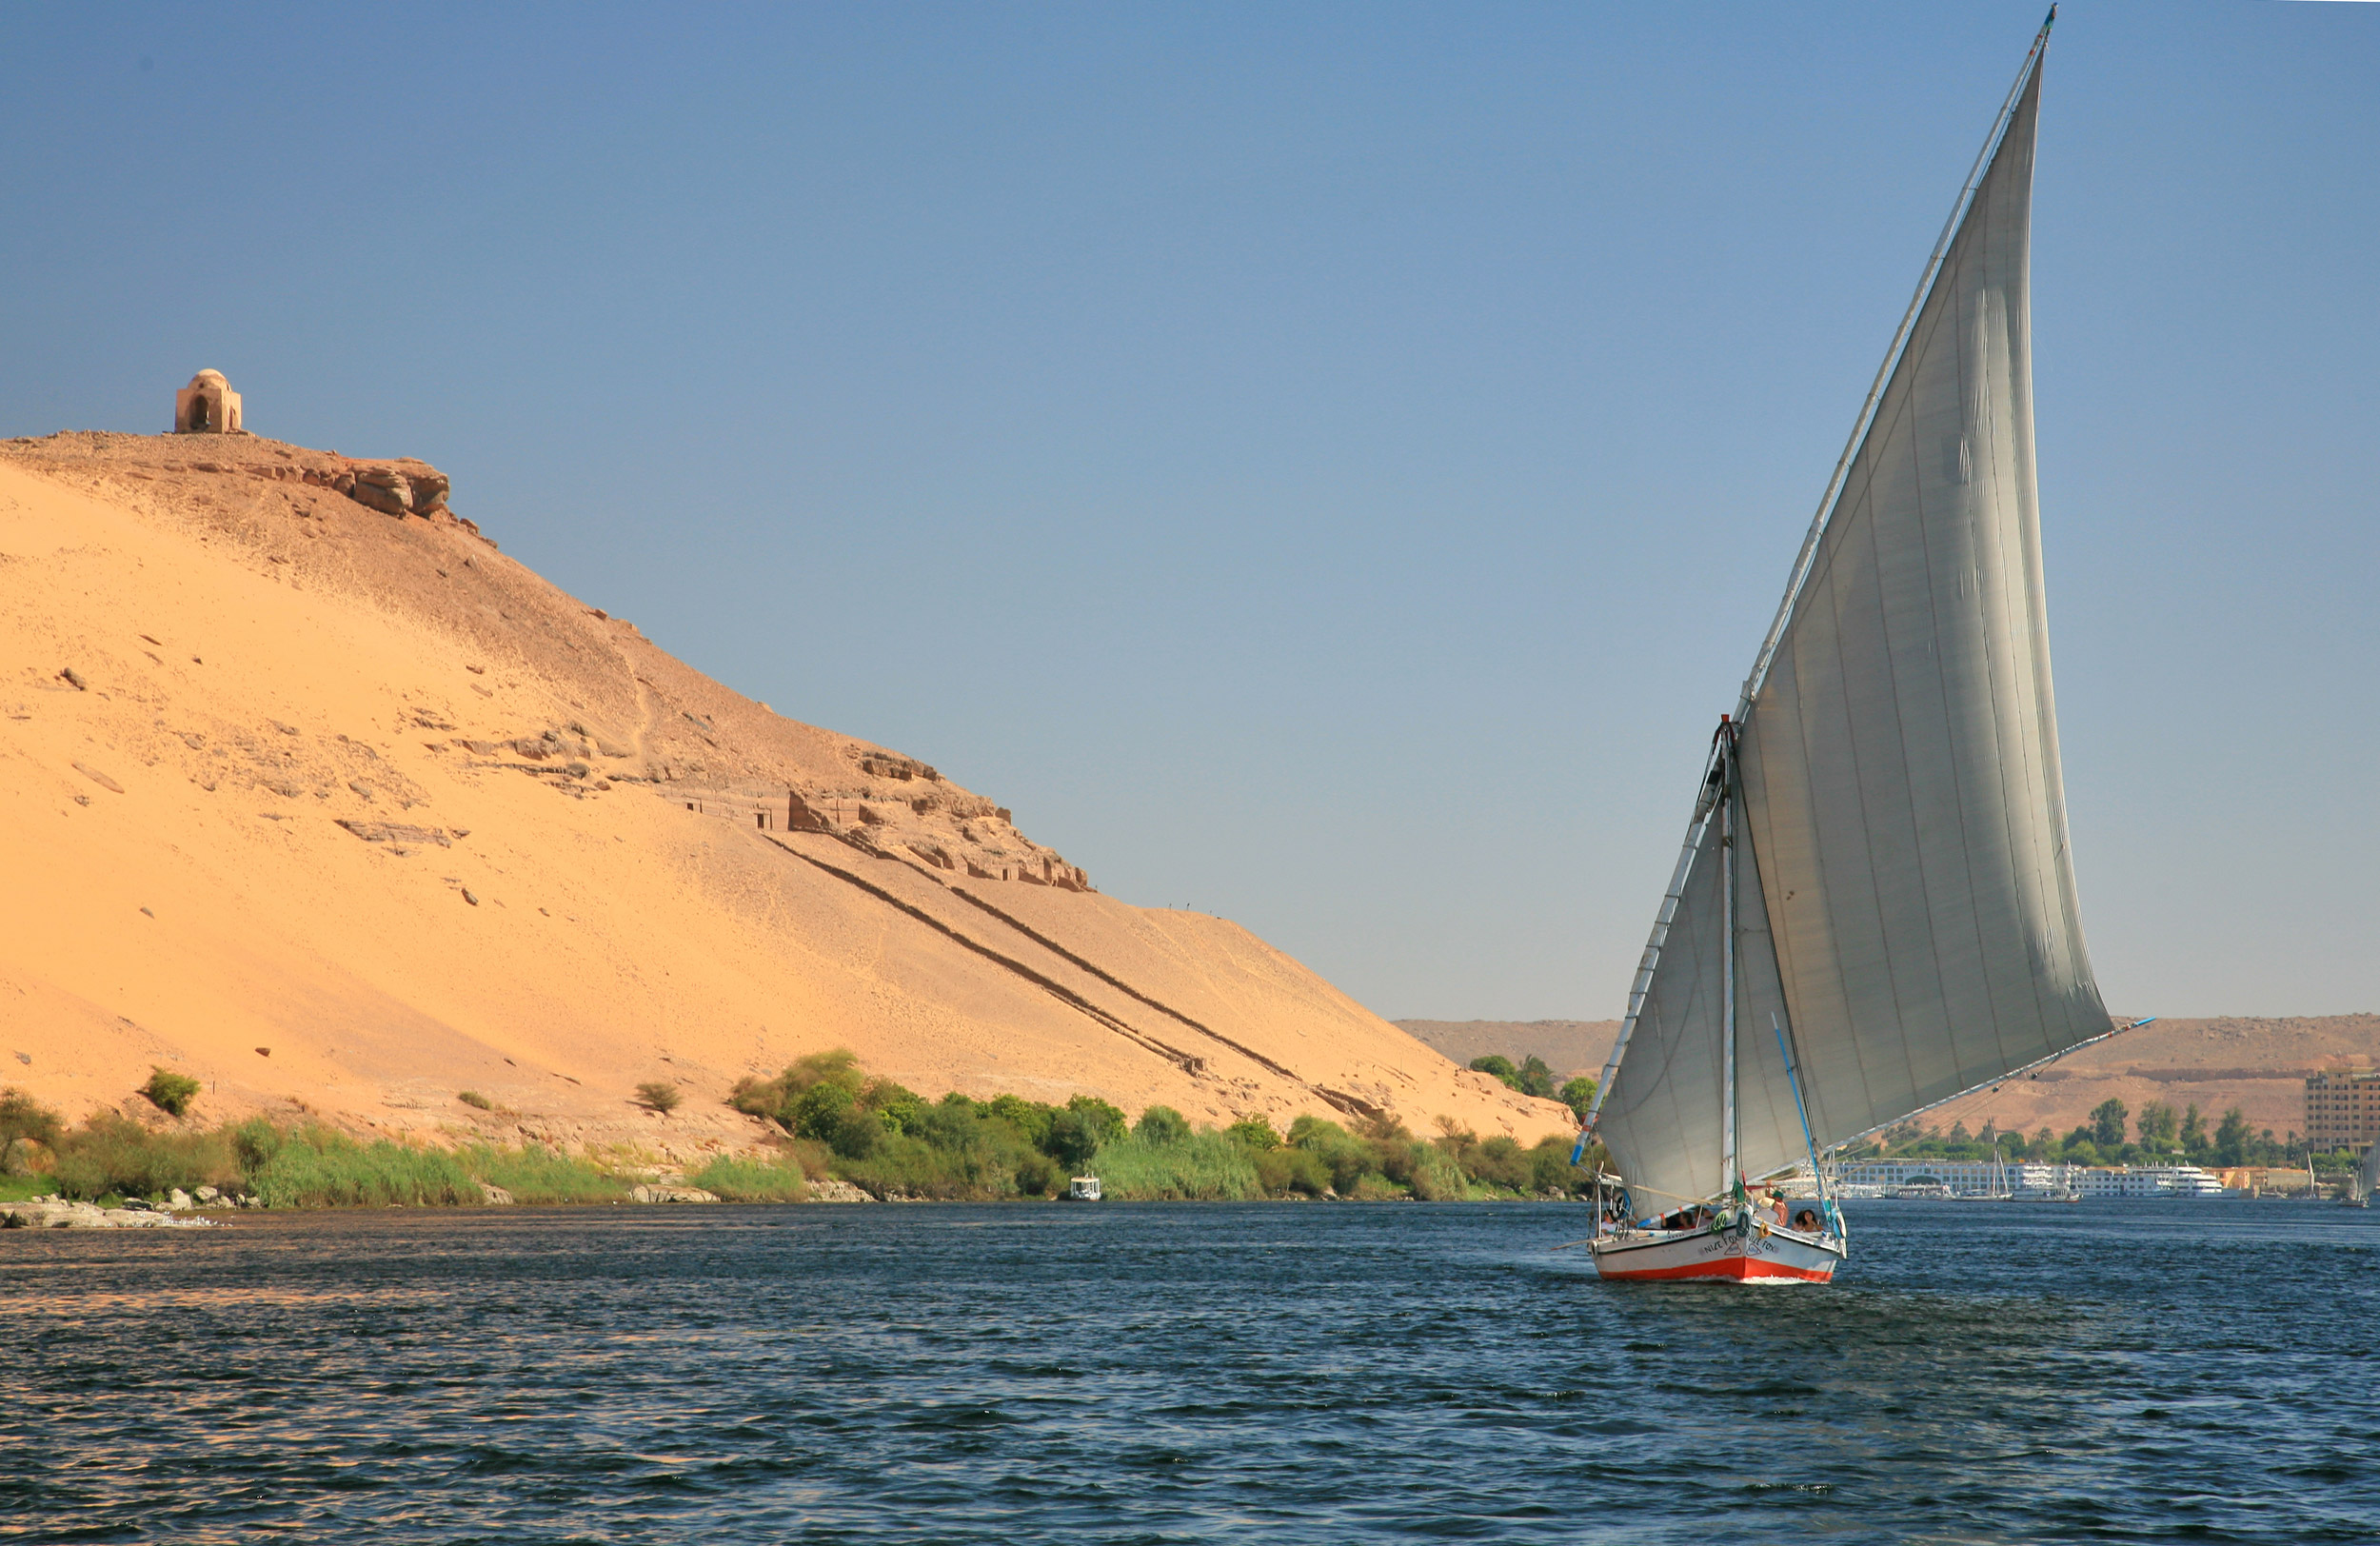 A skiff on the River Nile with a steep brown hill on the side in Egypt